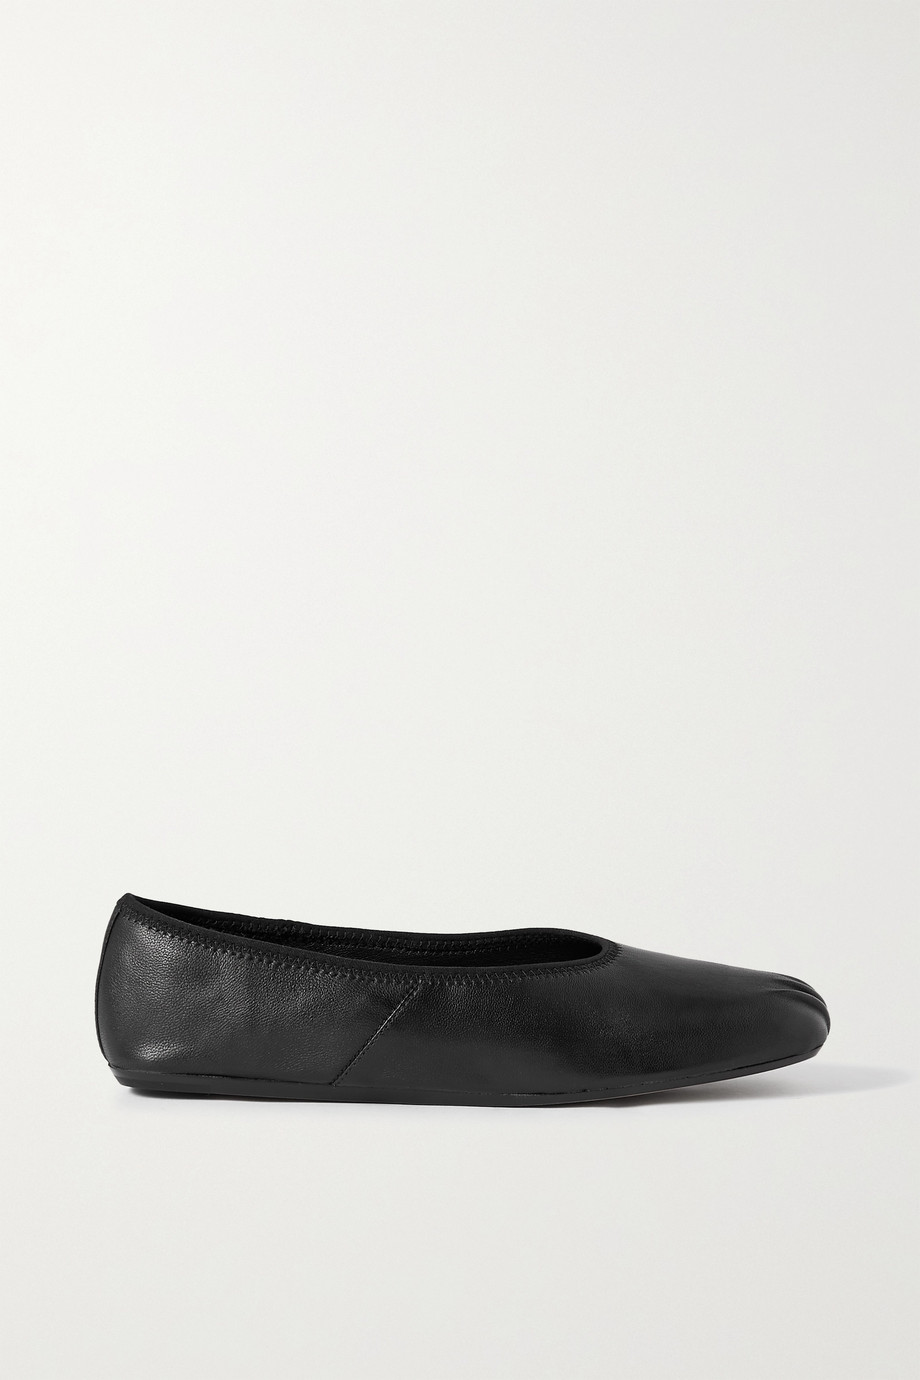 VINCE Kiana gathered leather ballet flats